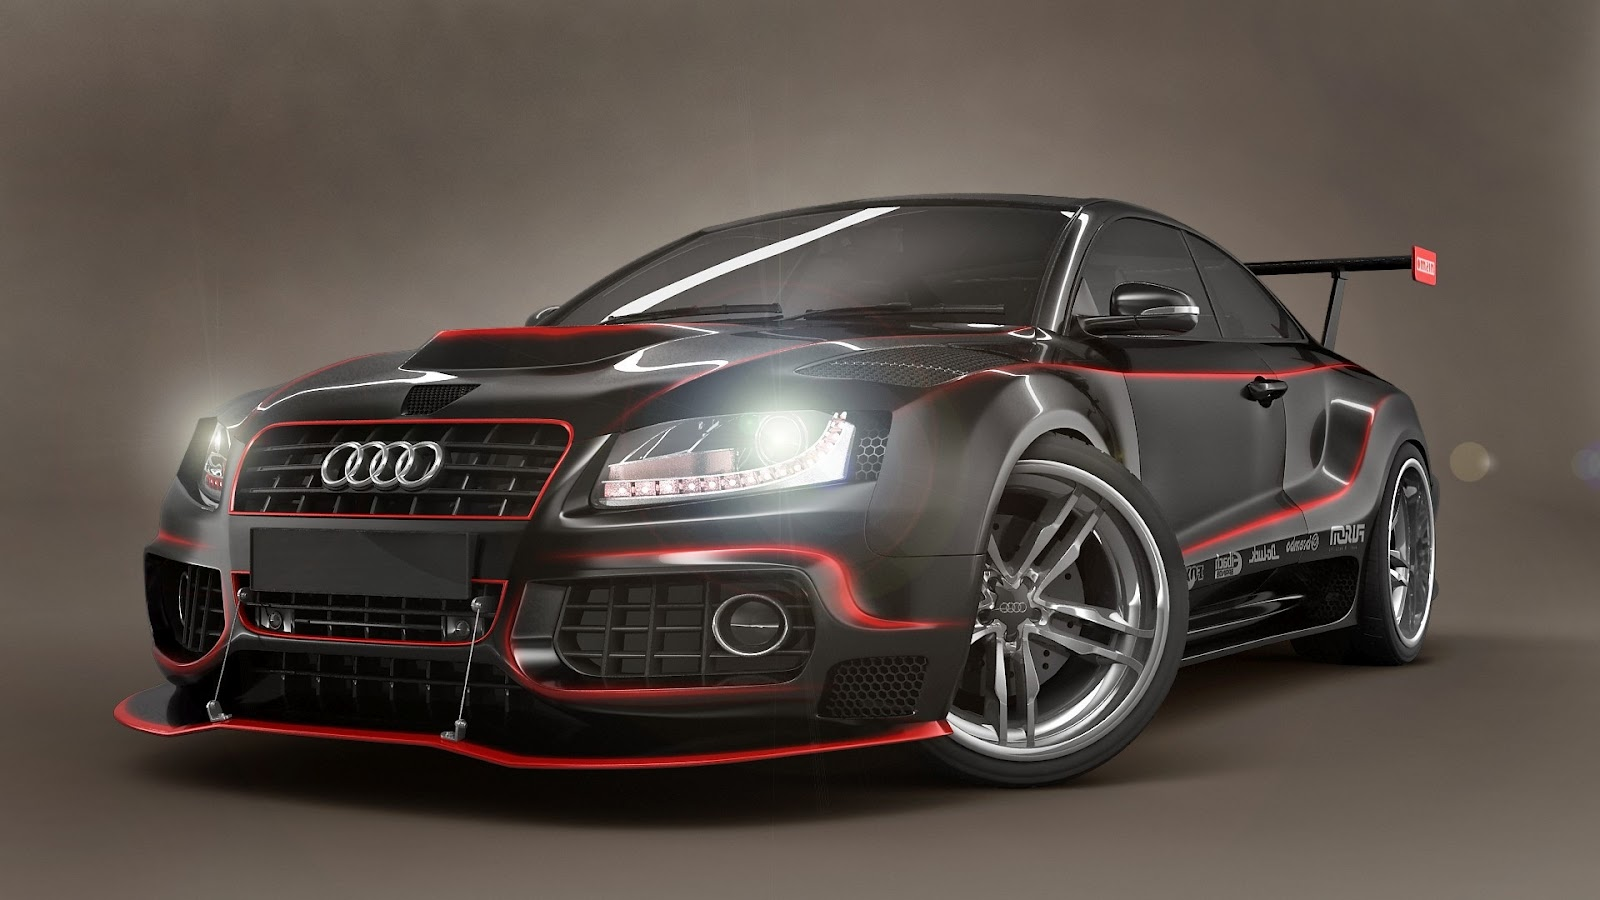 http://1.bp.blogspot.com/-eXA6AEJugLw/T1IuMYwrf6I/AAAAAAAAAx4/h4Jxrh_KOKo/s1600/Audi_S5_Body_Kit_Modifies_Red_Lines_HD_Car_Wallpaper.jpg